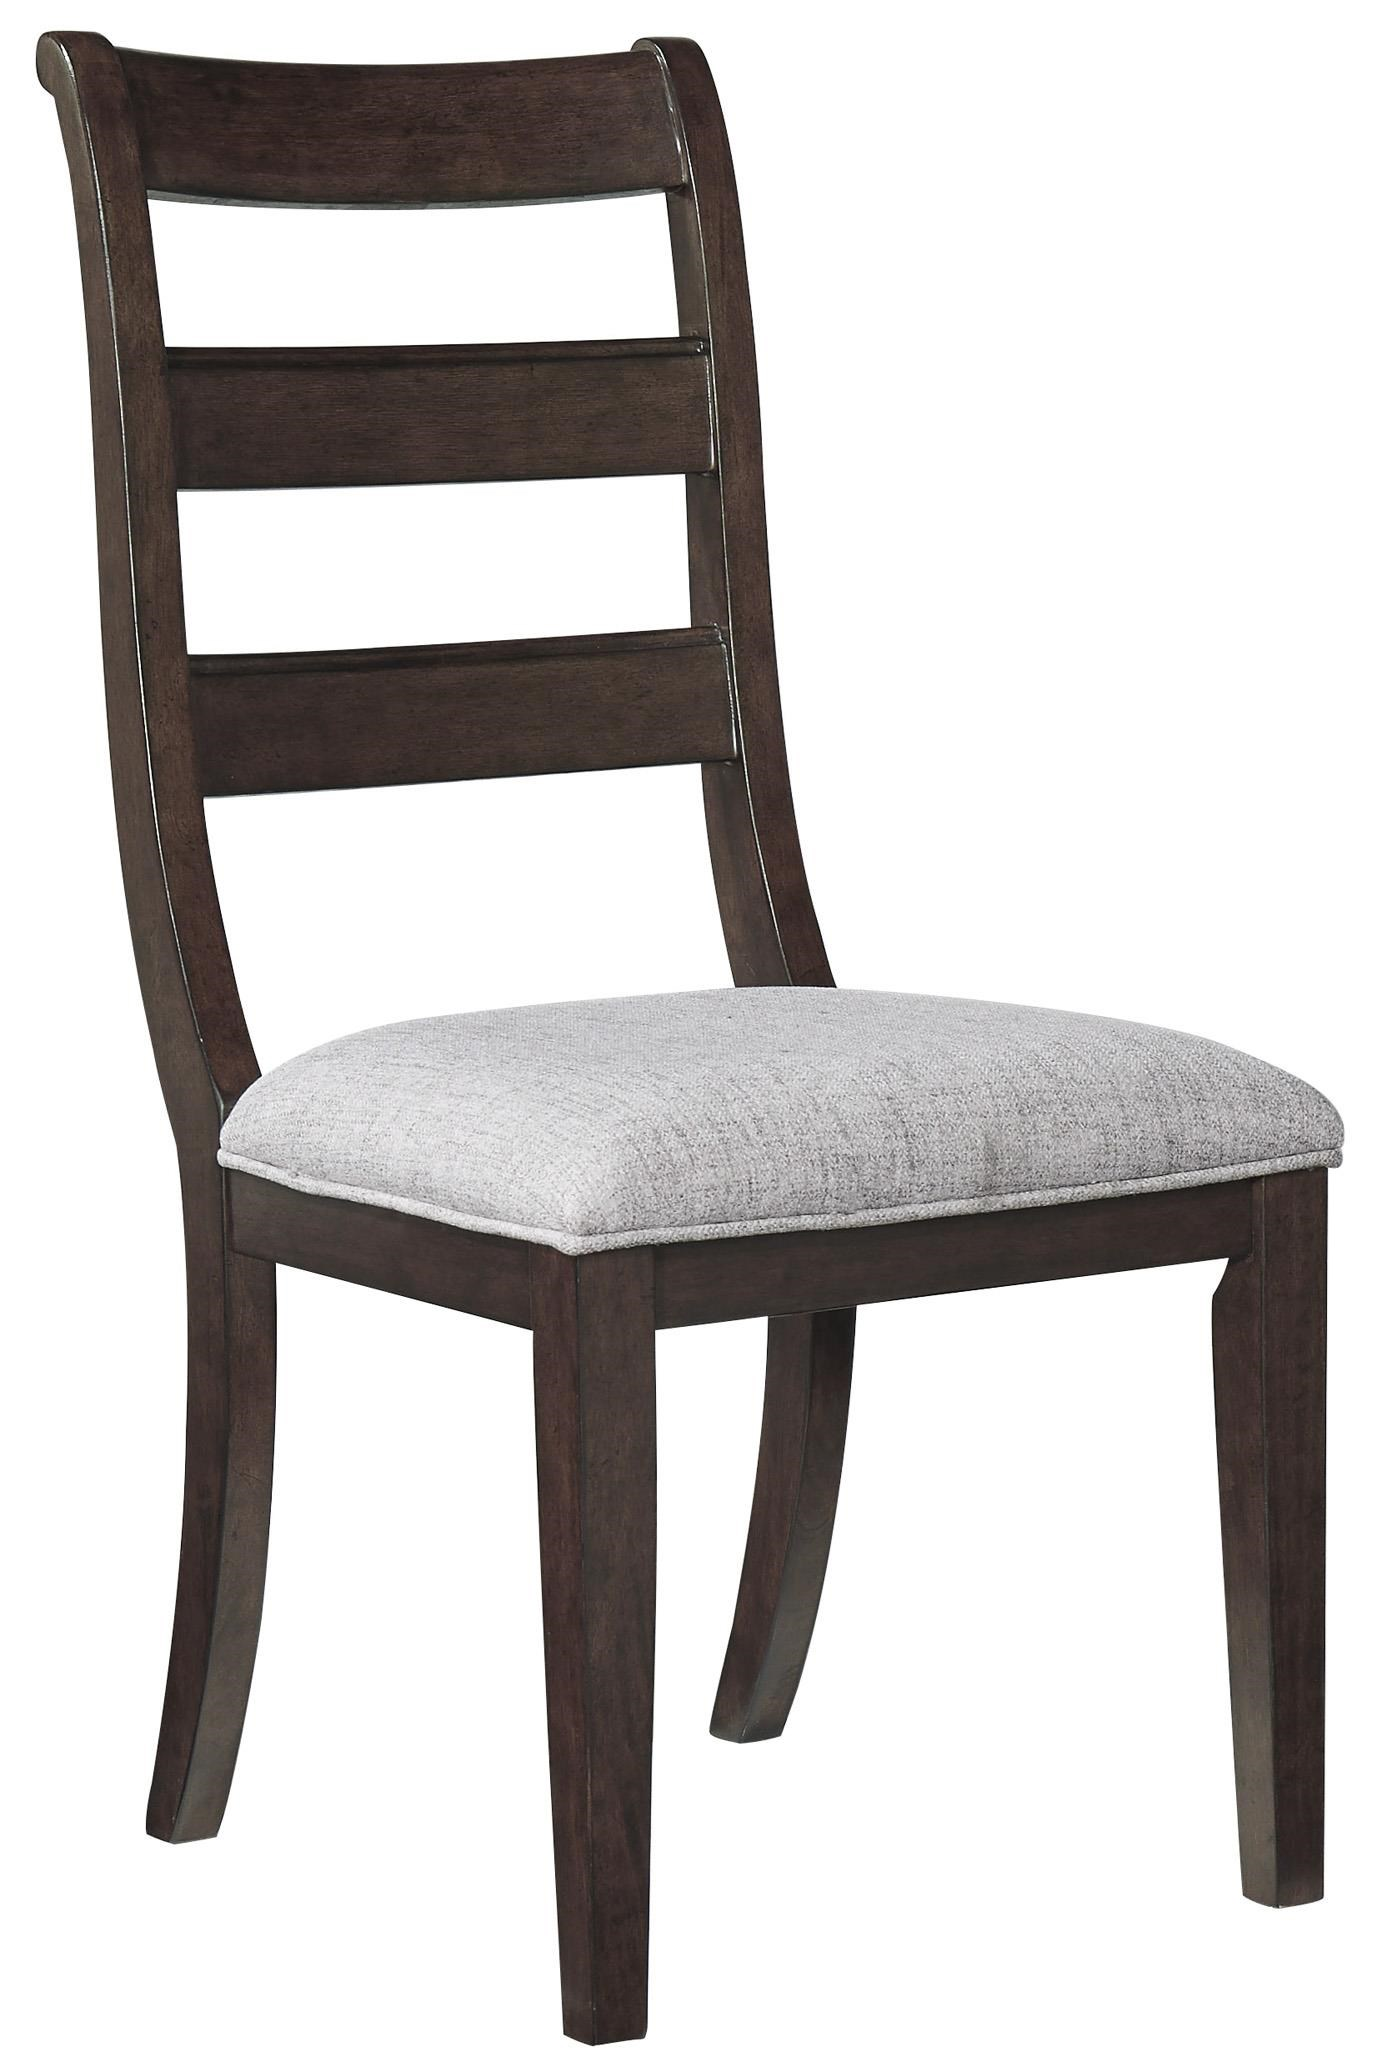 Adinton Dining Room UPH Side Chair by Signature Design by Ashley at Sam Levitz Furniture